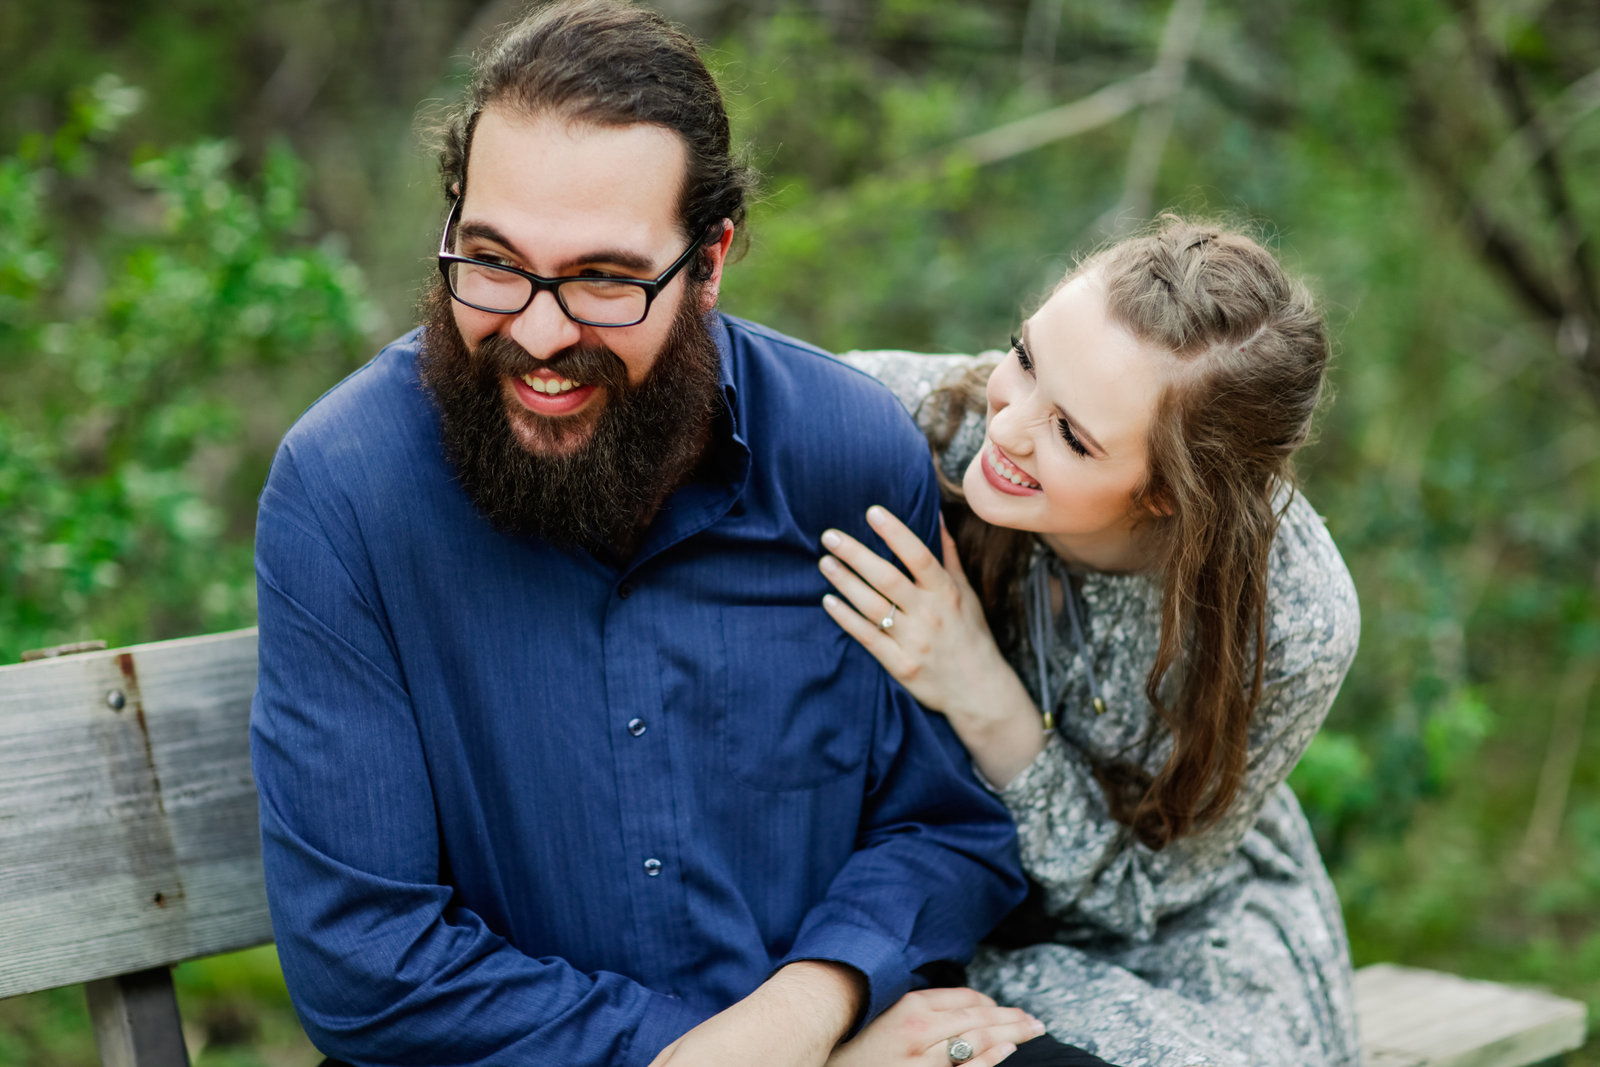 Eisenhower-Park-San-Antonio-Texas-Engagement-Session-Photo-62